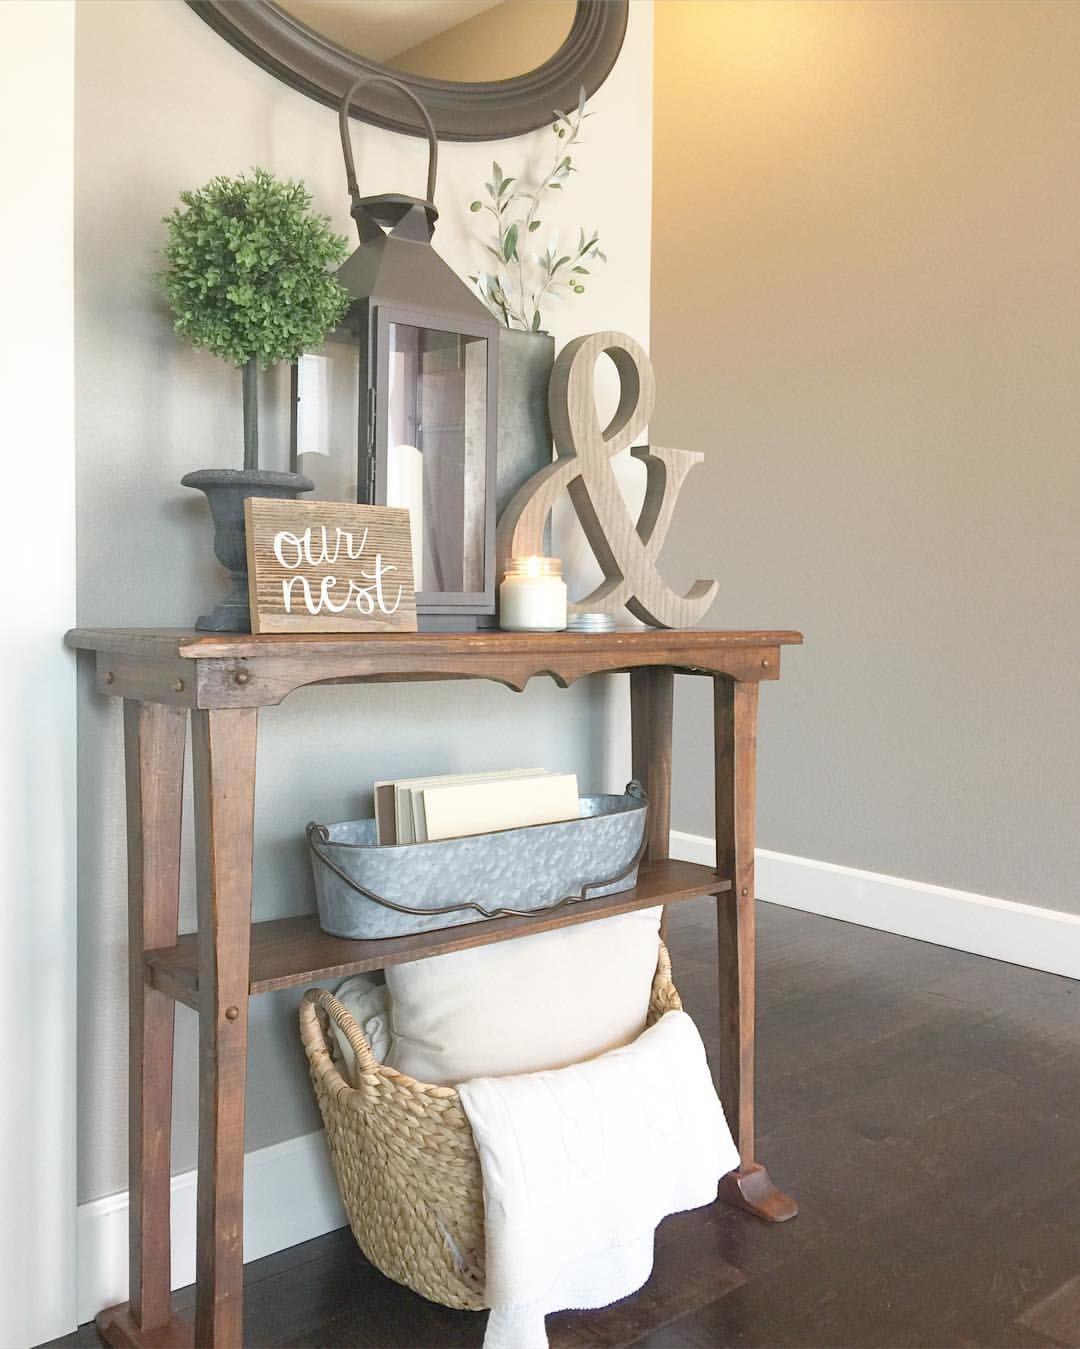 pin carol alger living room home decor house accent table ideas small hallway narrow entry entryway pottery barn black dining bedside and dressing chrome console plain cloths